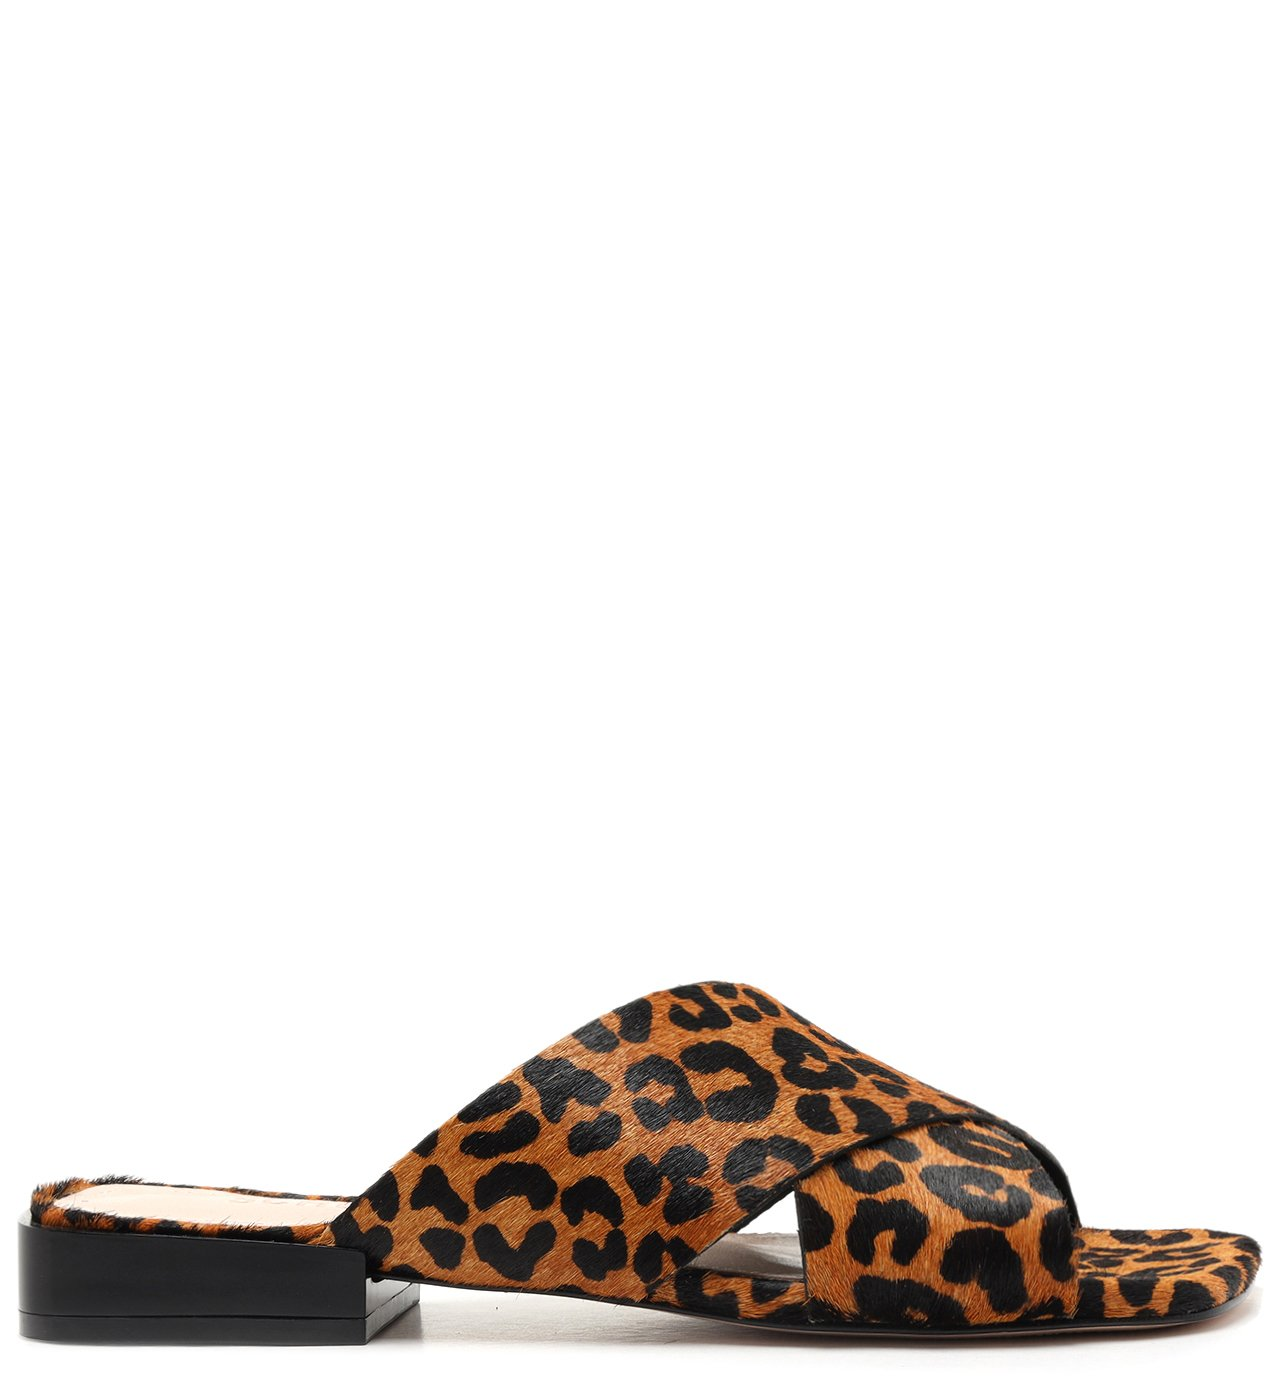 Flat Cross Animal Print | Schutz